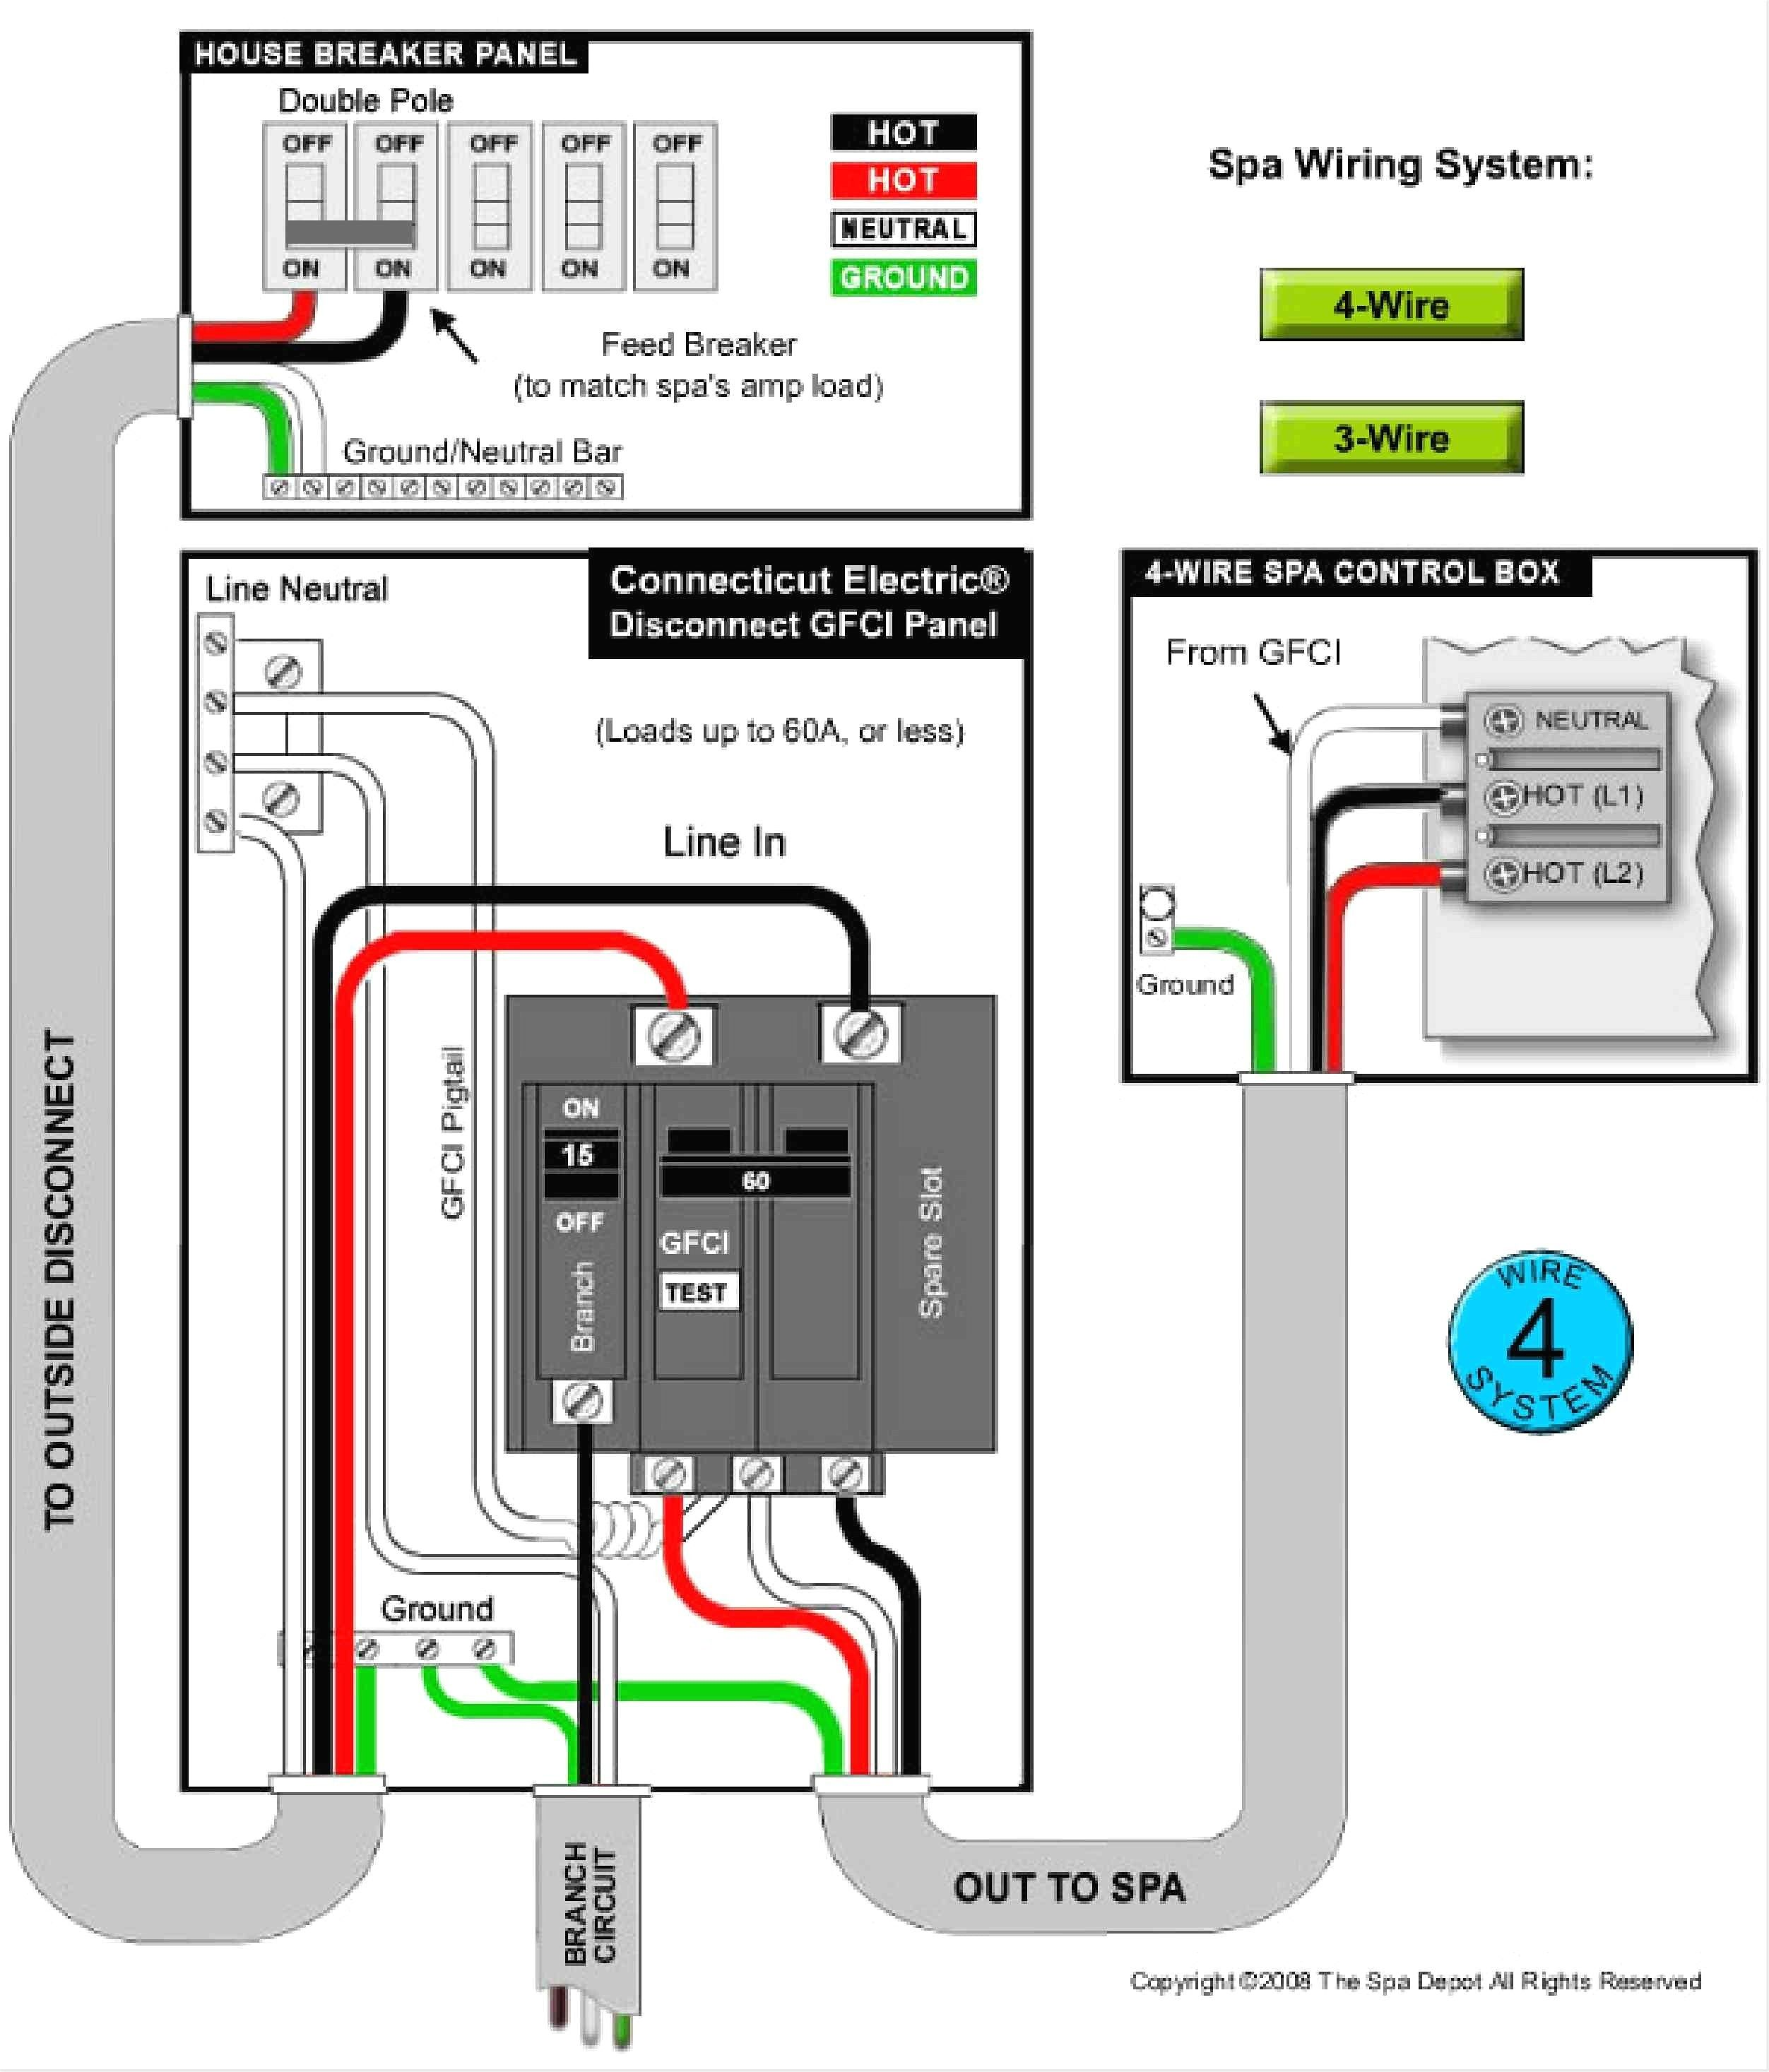 [DIAGRAM_09CH]  New Gfci Wiring Diagram for Hot Tub #diagram #diagramsample  #diagramtemplate #wiringdiagram #diagramchart #worksh… | Gfci, Hot tub  delivery, Electrical panel wiring | Hot Tub Electrical Wiring Diagrams |  | Pinterest